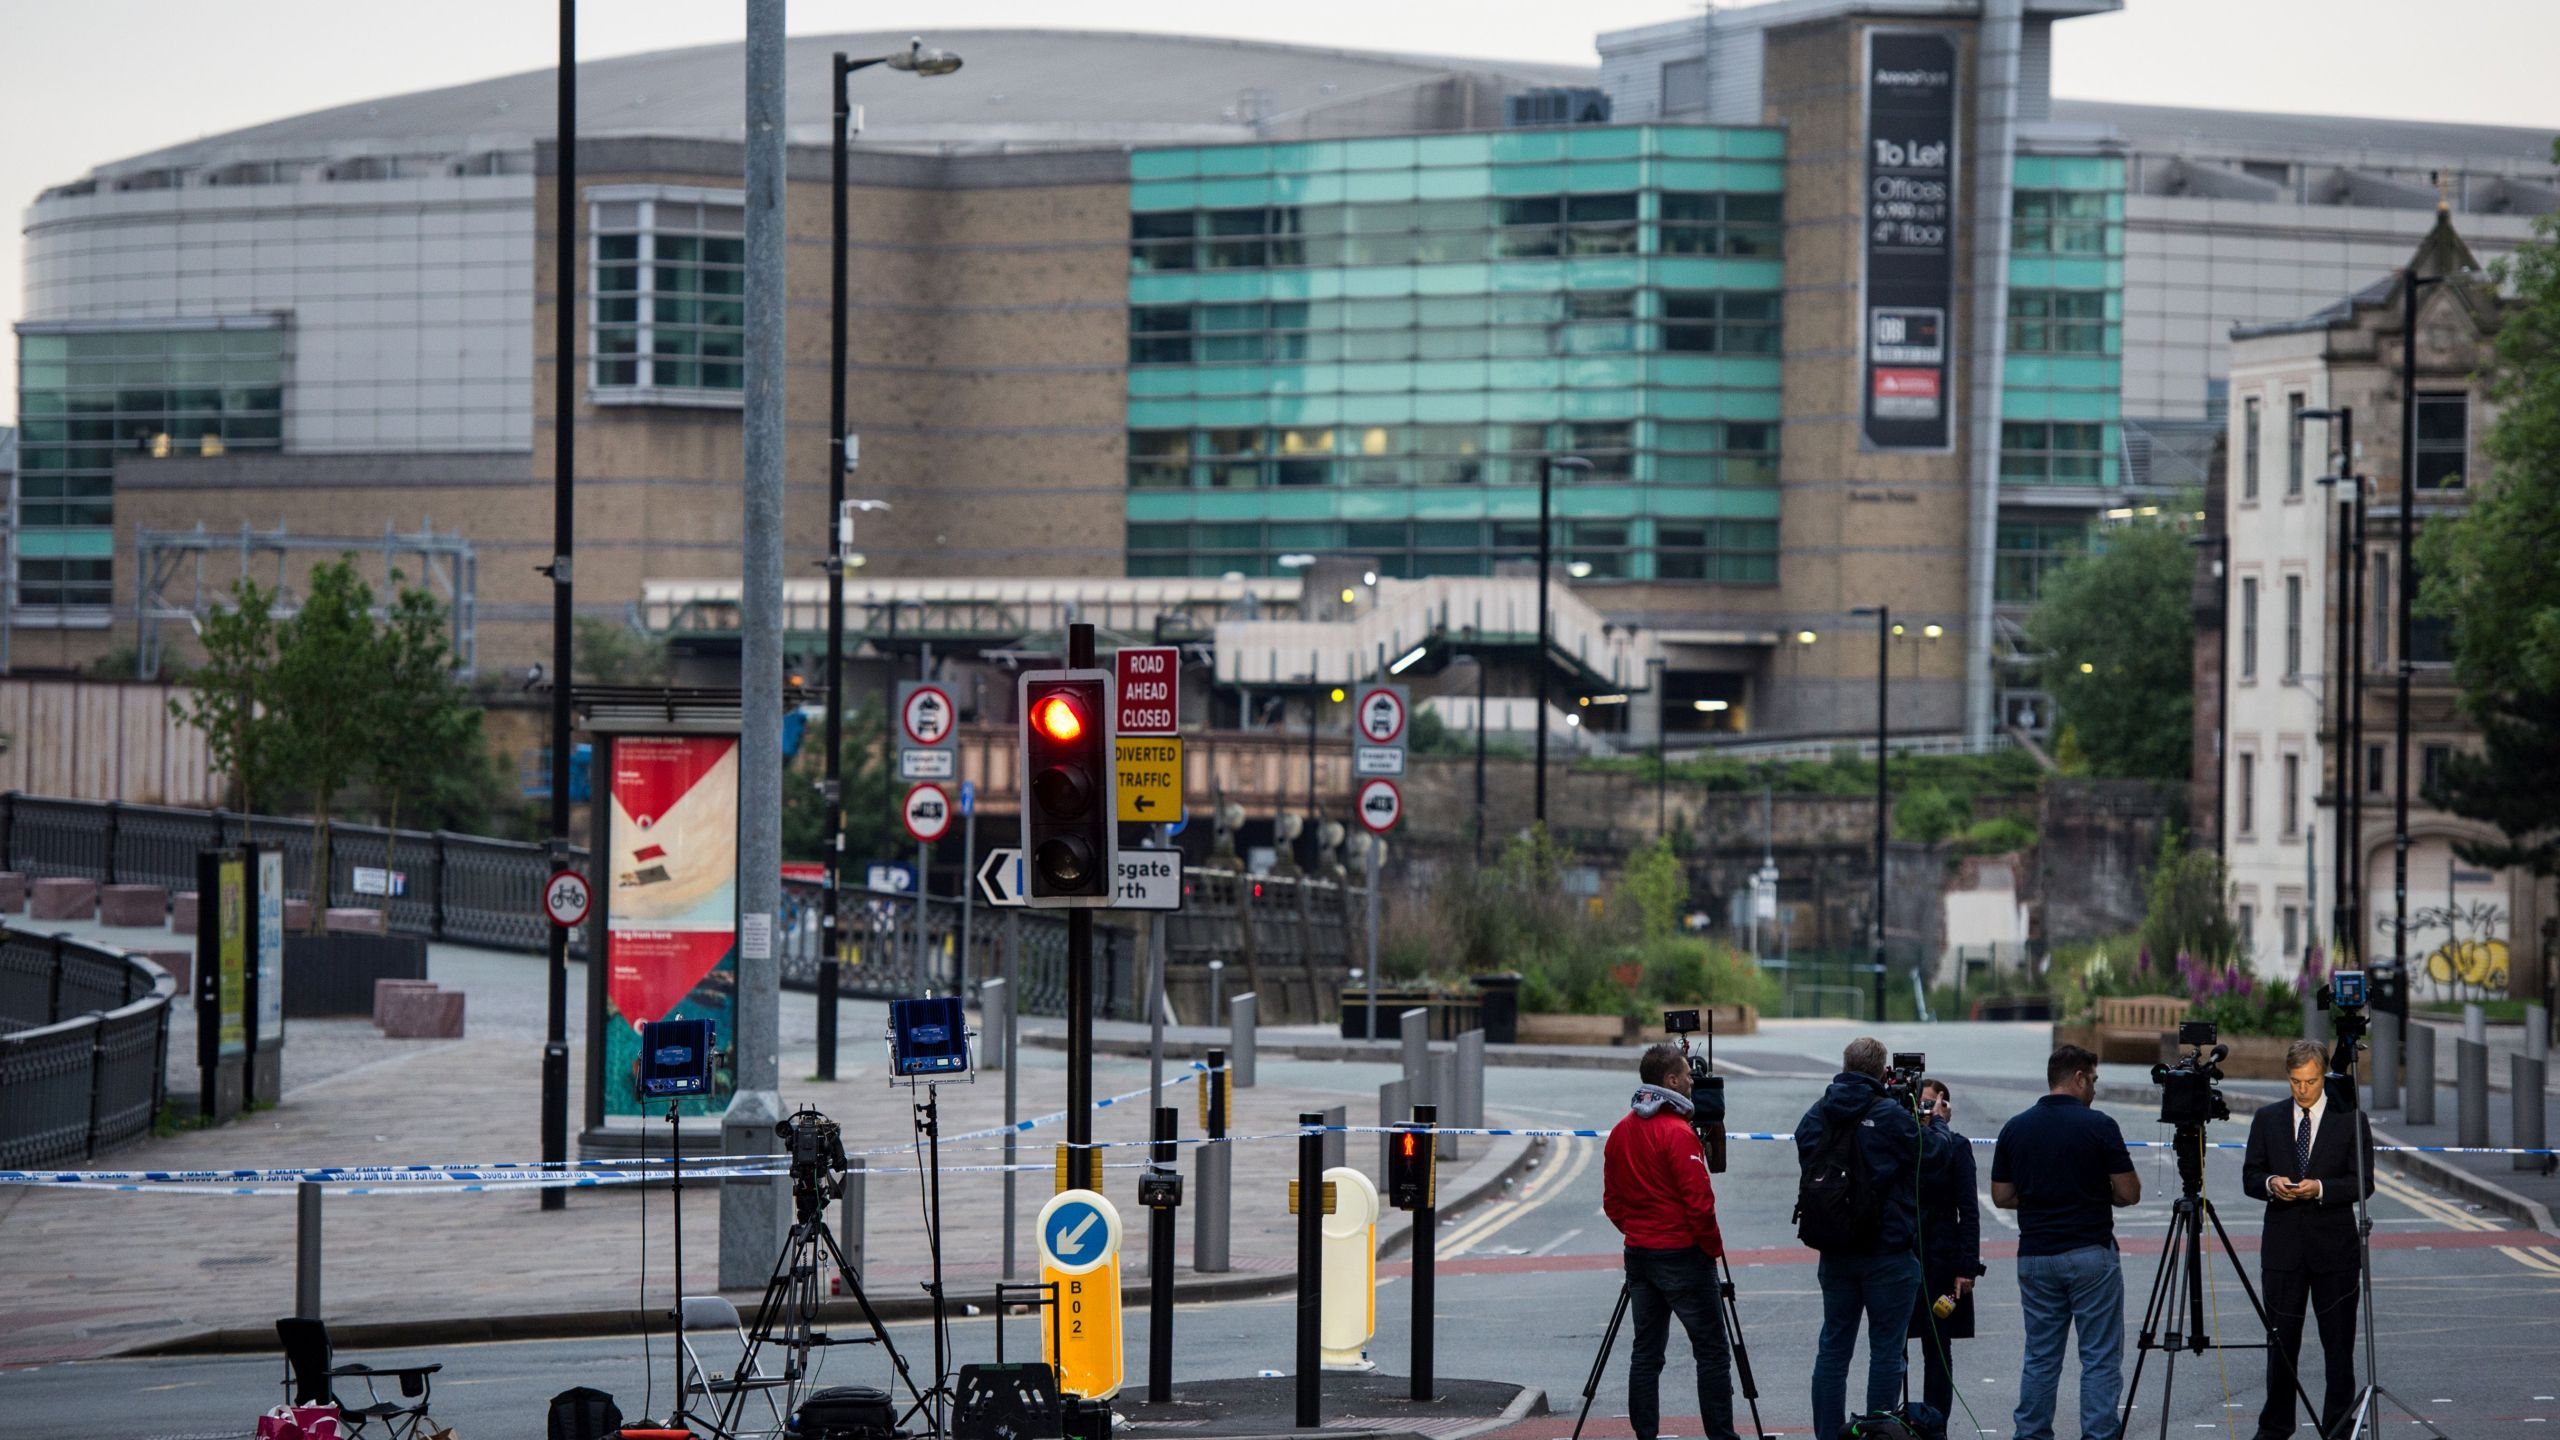 Journalists and television cameras stand by a police cordon near to the Manchester Arena in Manchester, northwest England on May 24, 2017, following the May 22 terror attack at the Manchester Arena. (Credit: CHRIS J RATCLIFFE/AFP/Getty Images)